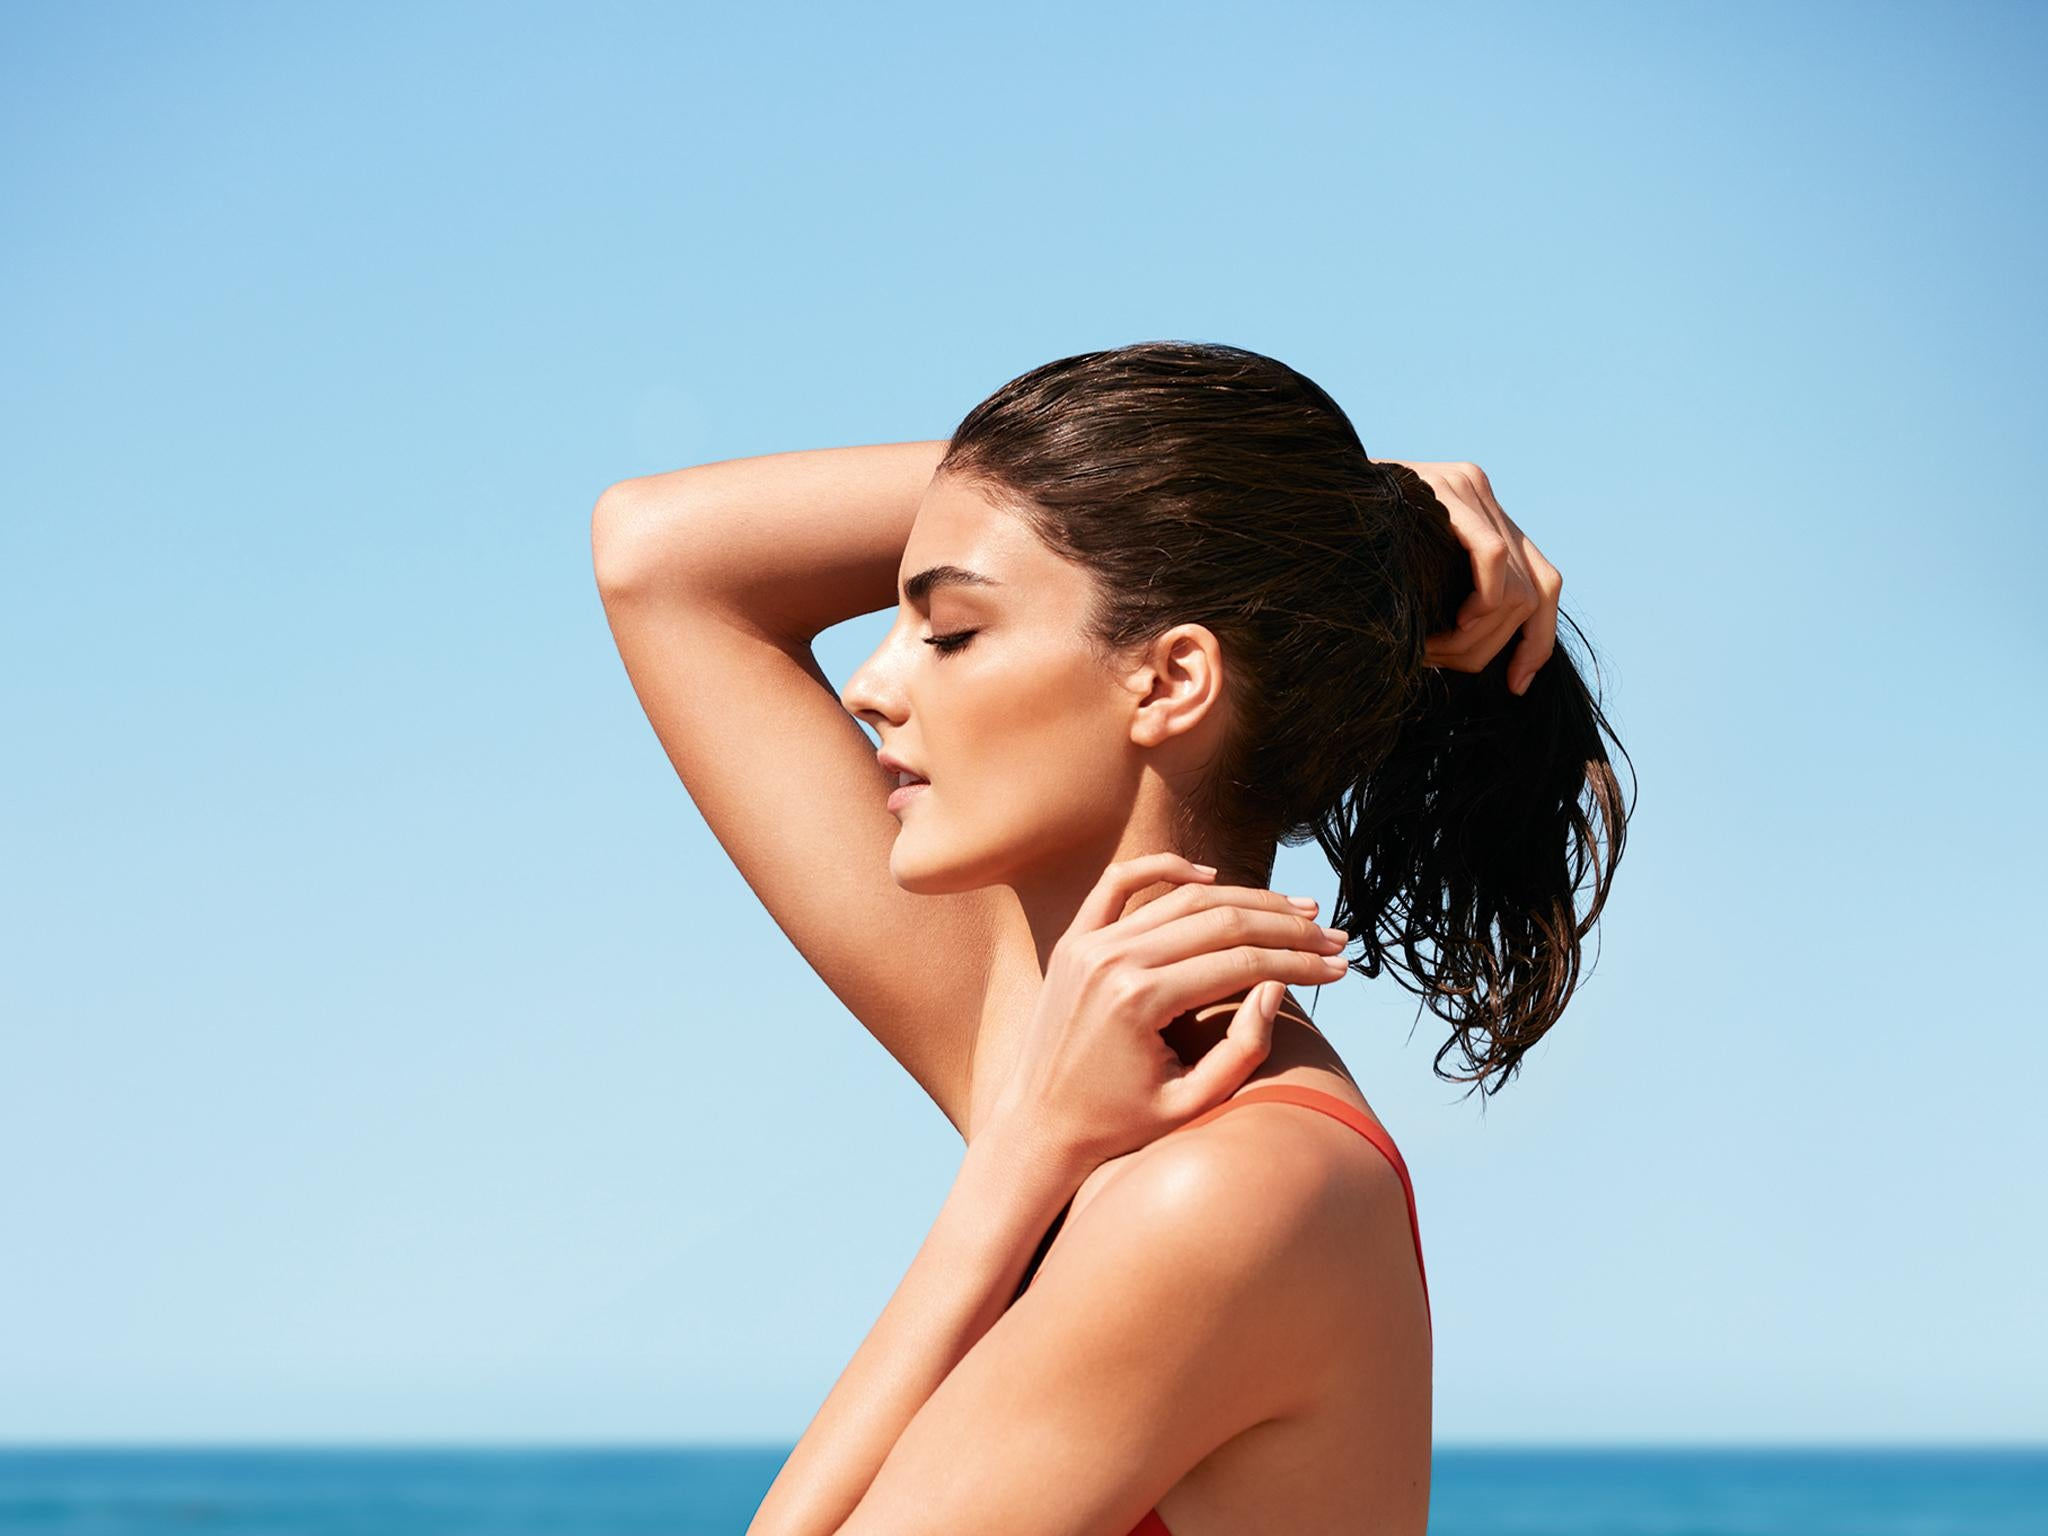 10 best sunscreens for body